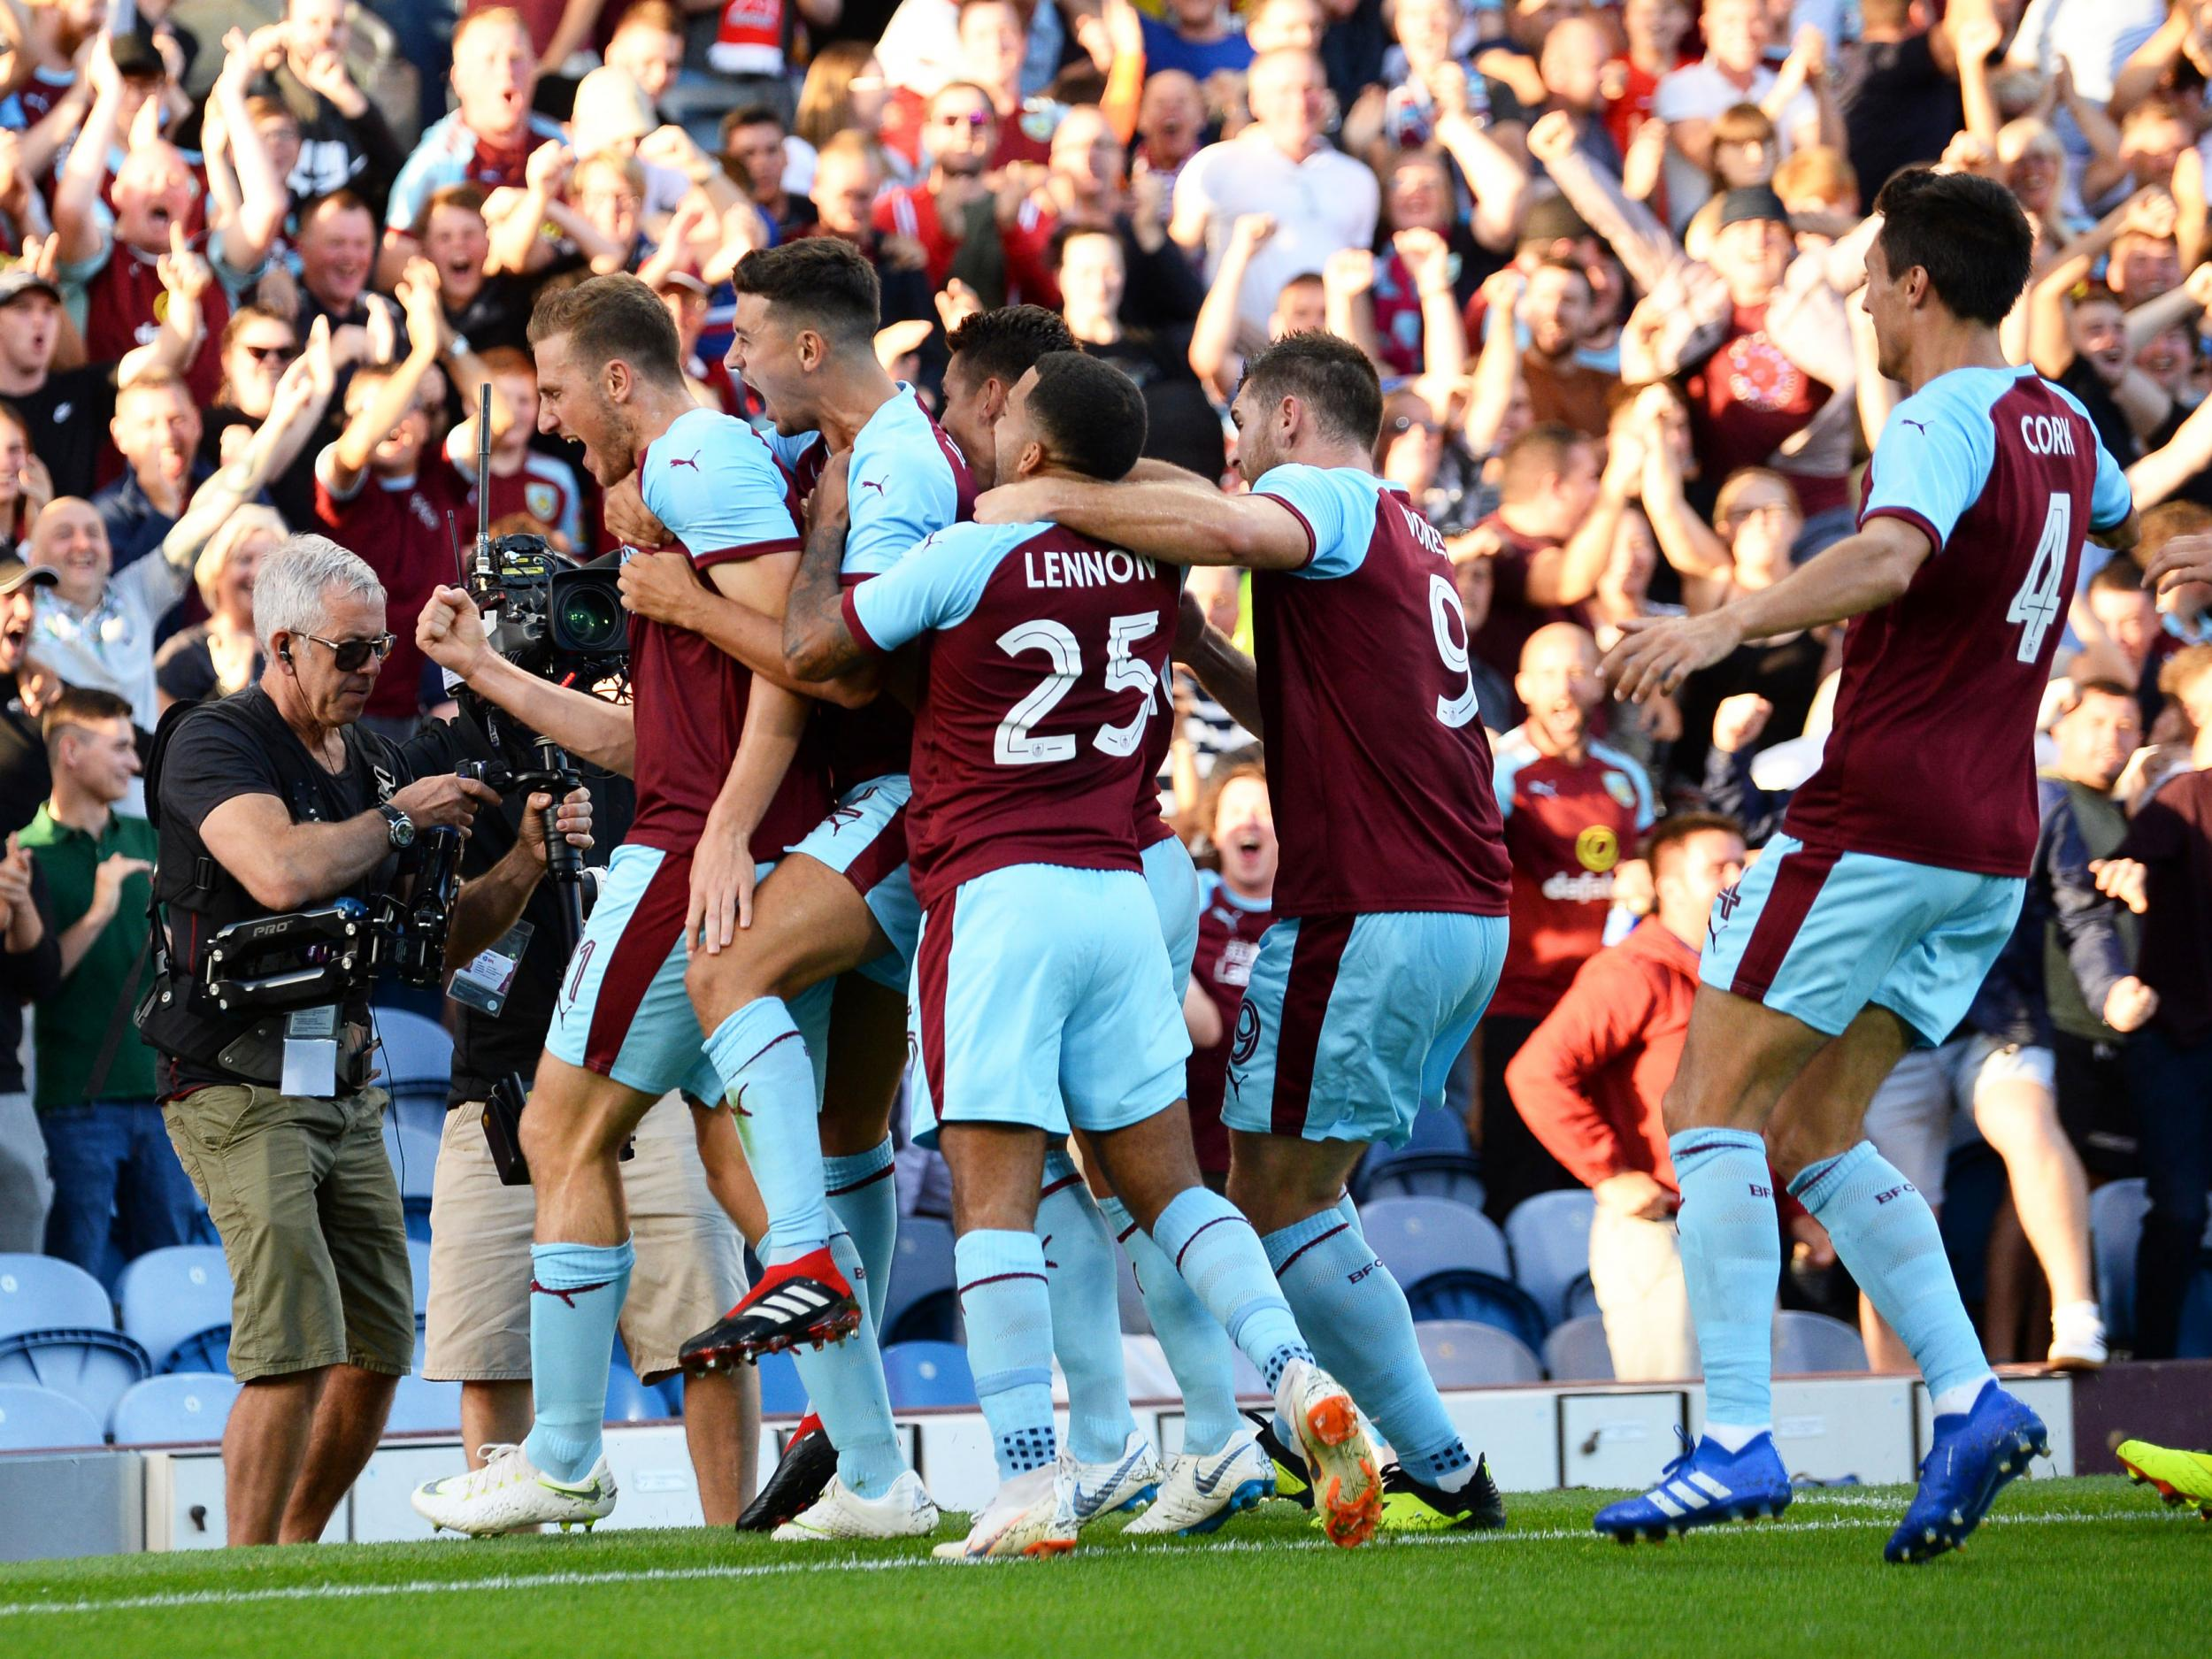 Burnley vs Watford Premier League preview: Kick-off time, where to watch, TV channel, odds and more